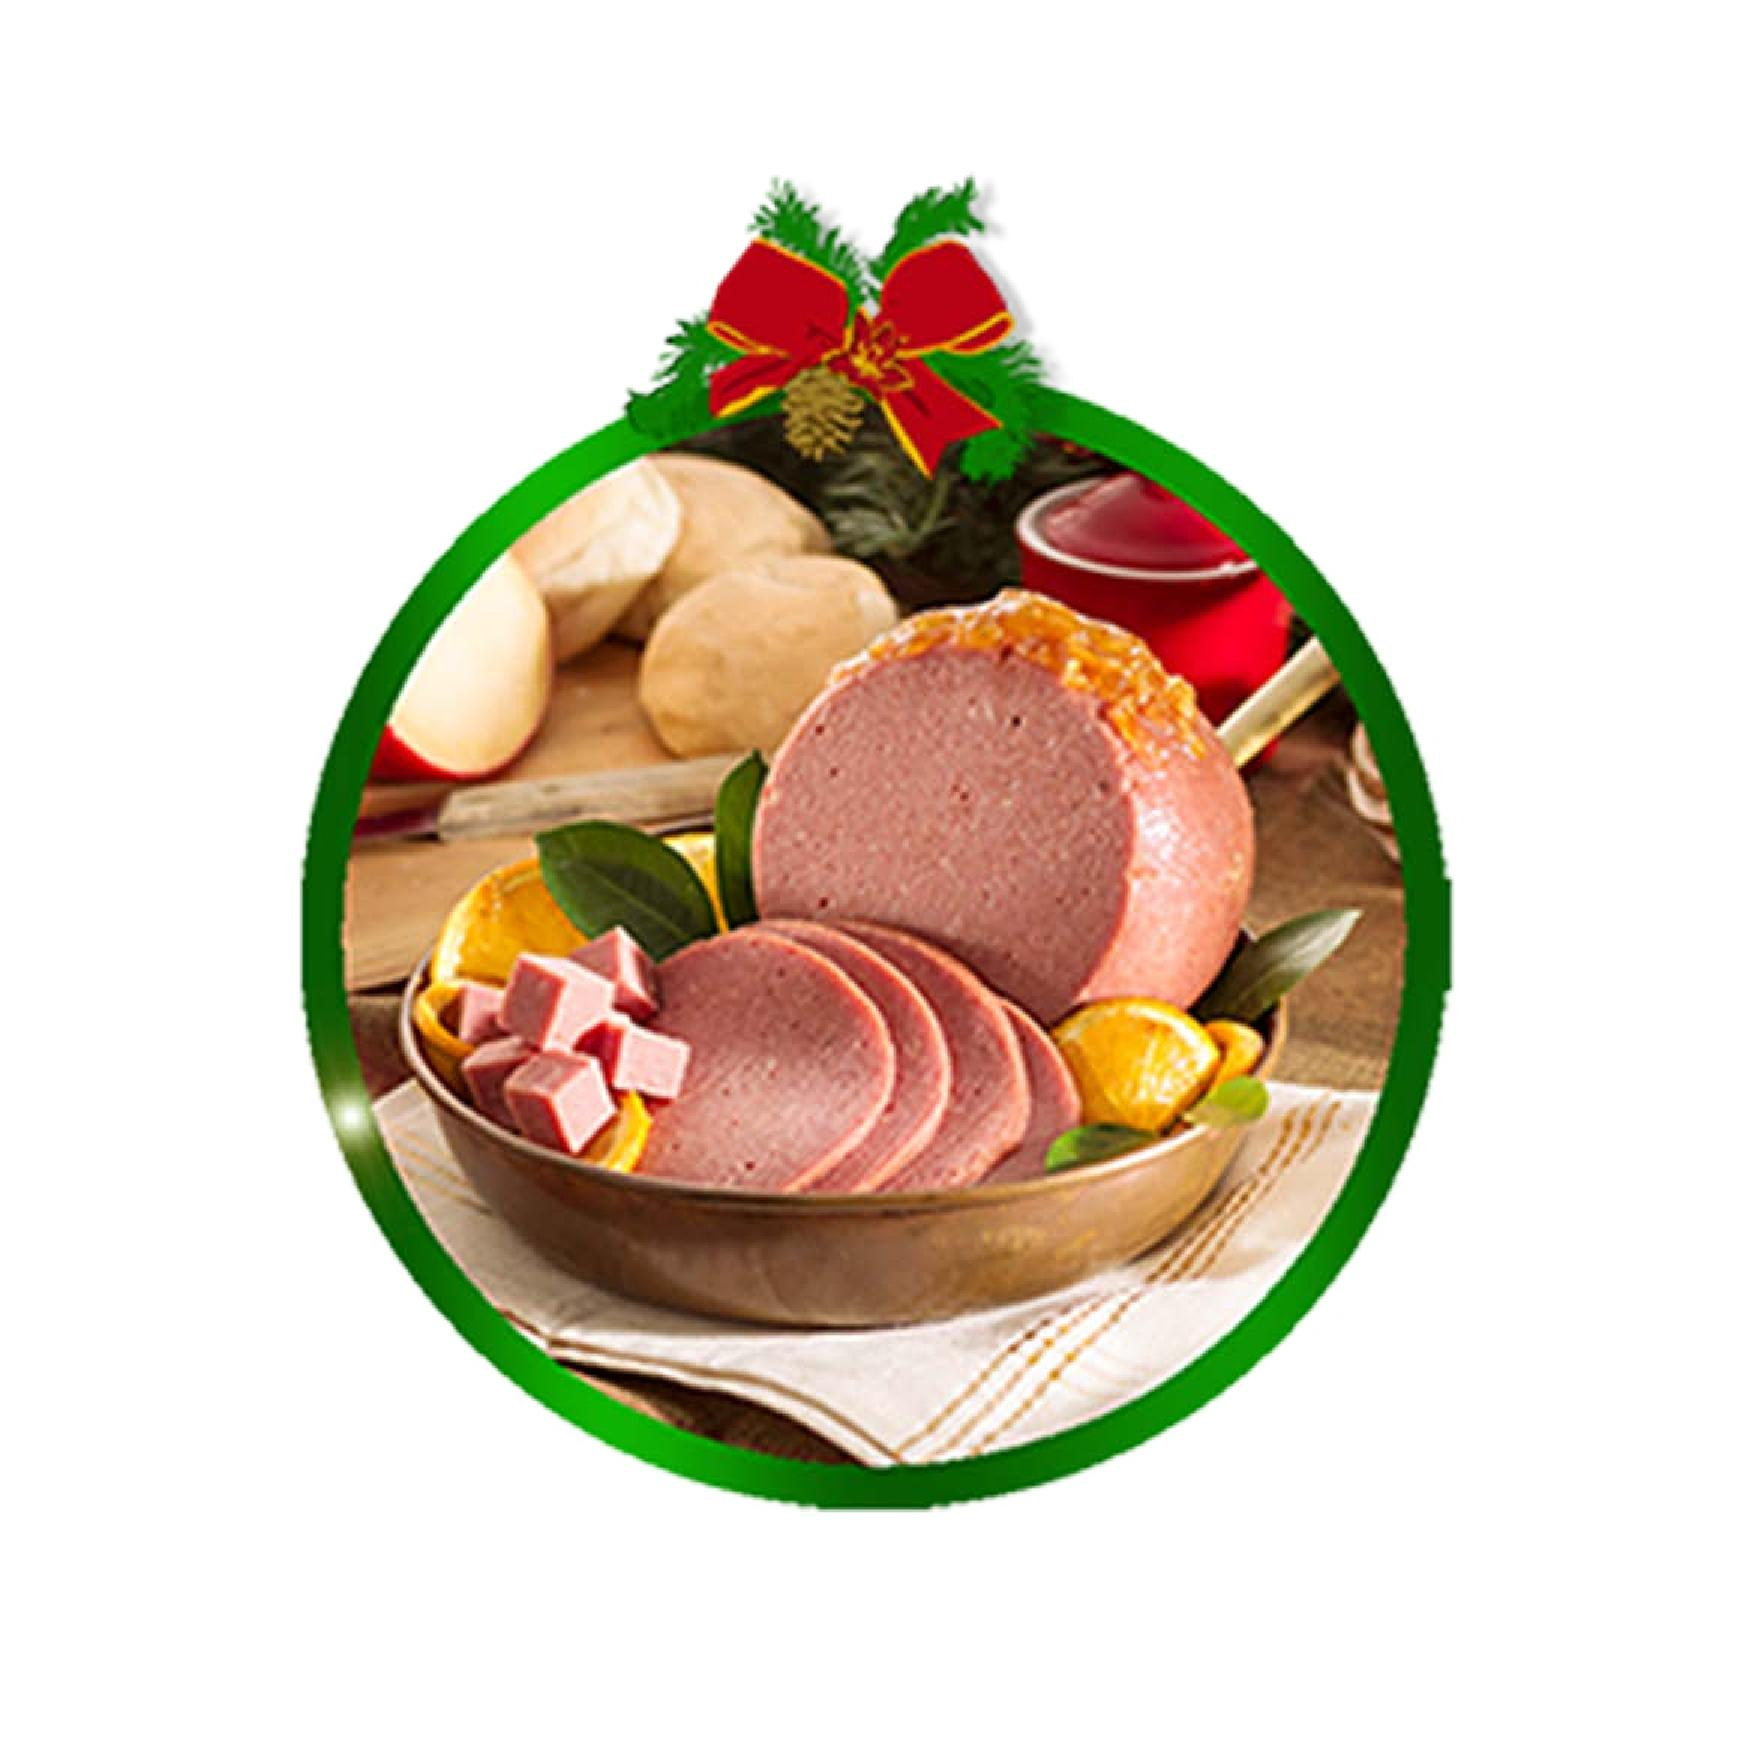 noche buena christmas songs Find and save ideas about filipino christmas songs on pinterest   see more ideas about nat king cole christmas, nat king and king cole.